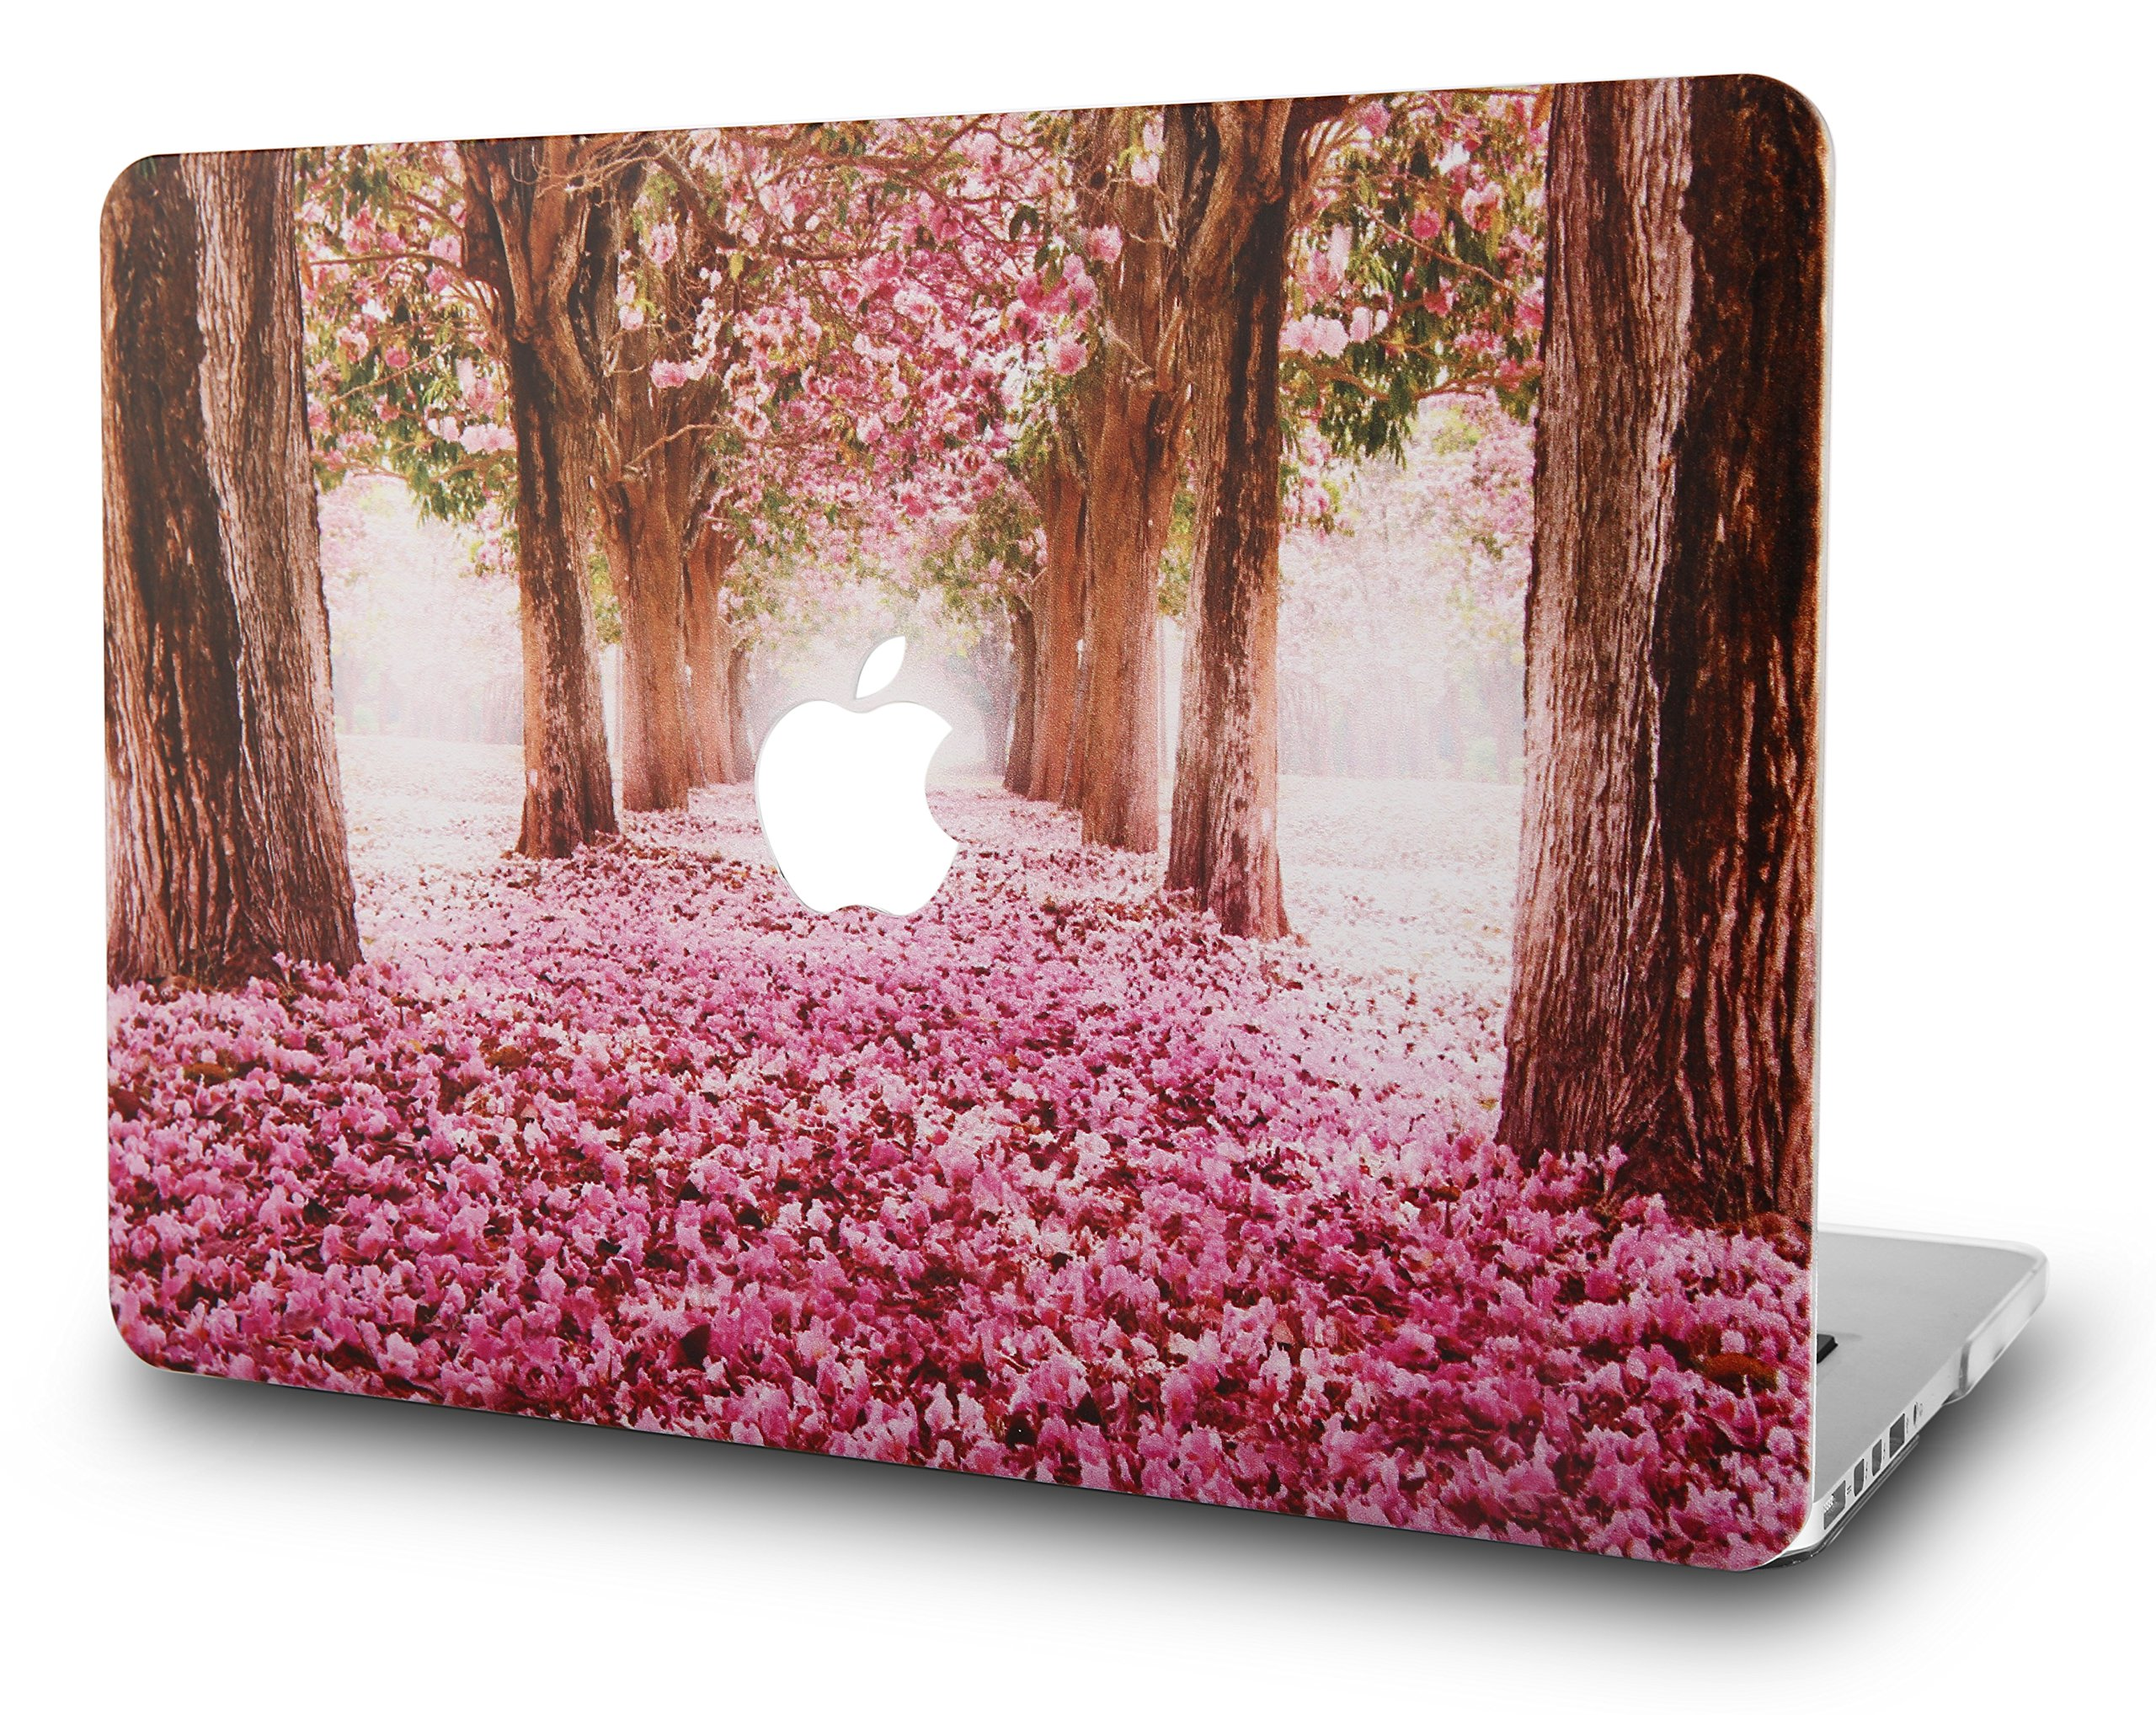 KEC Laptop Case for MacBook Air 13'' Plastic Case Hard Shell Cover A1466 / A1369 (Cherry Blossoms)